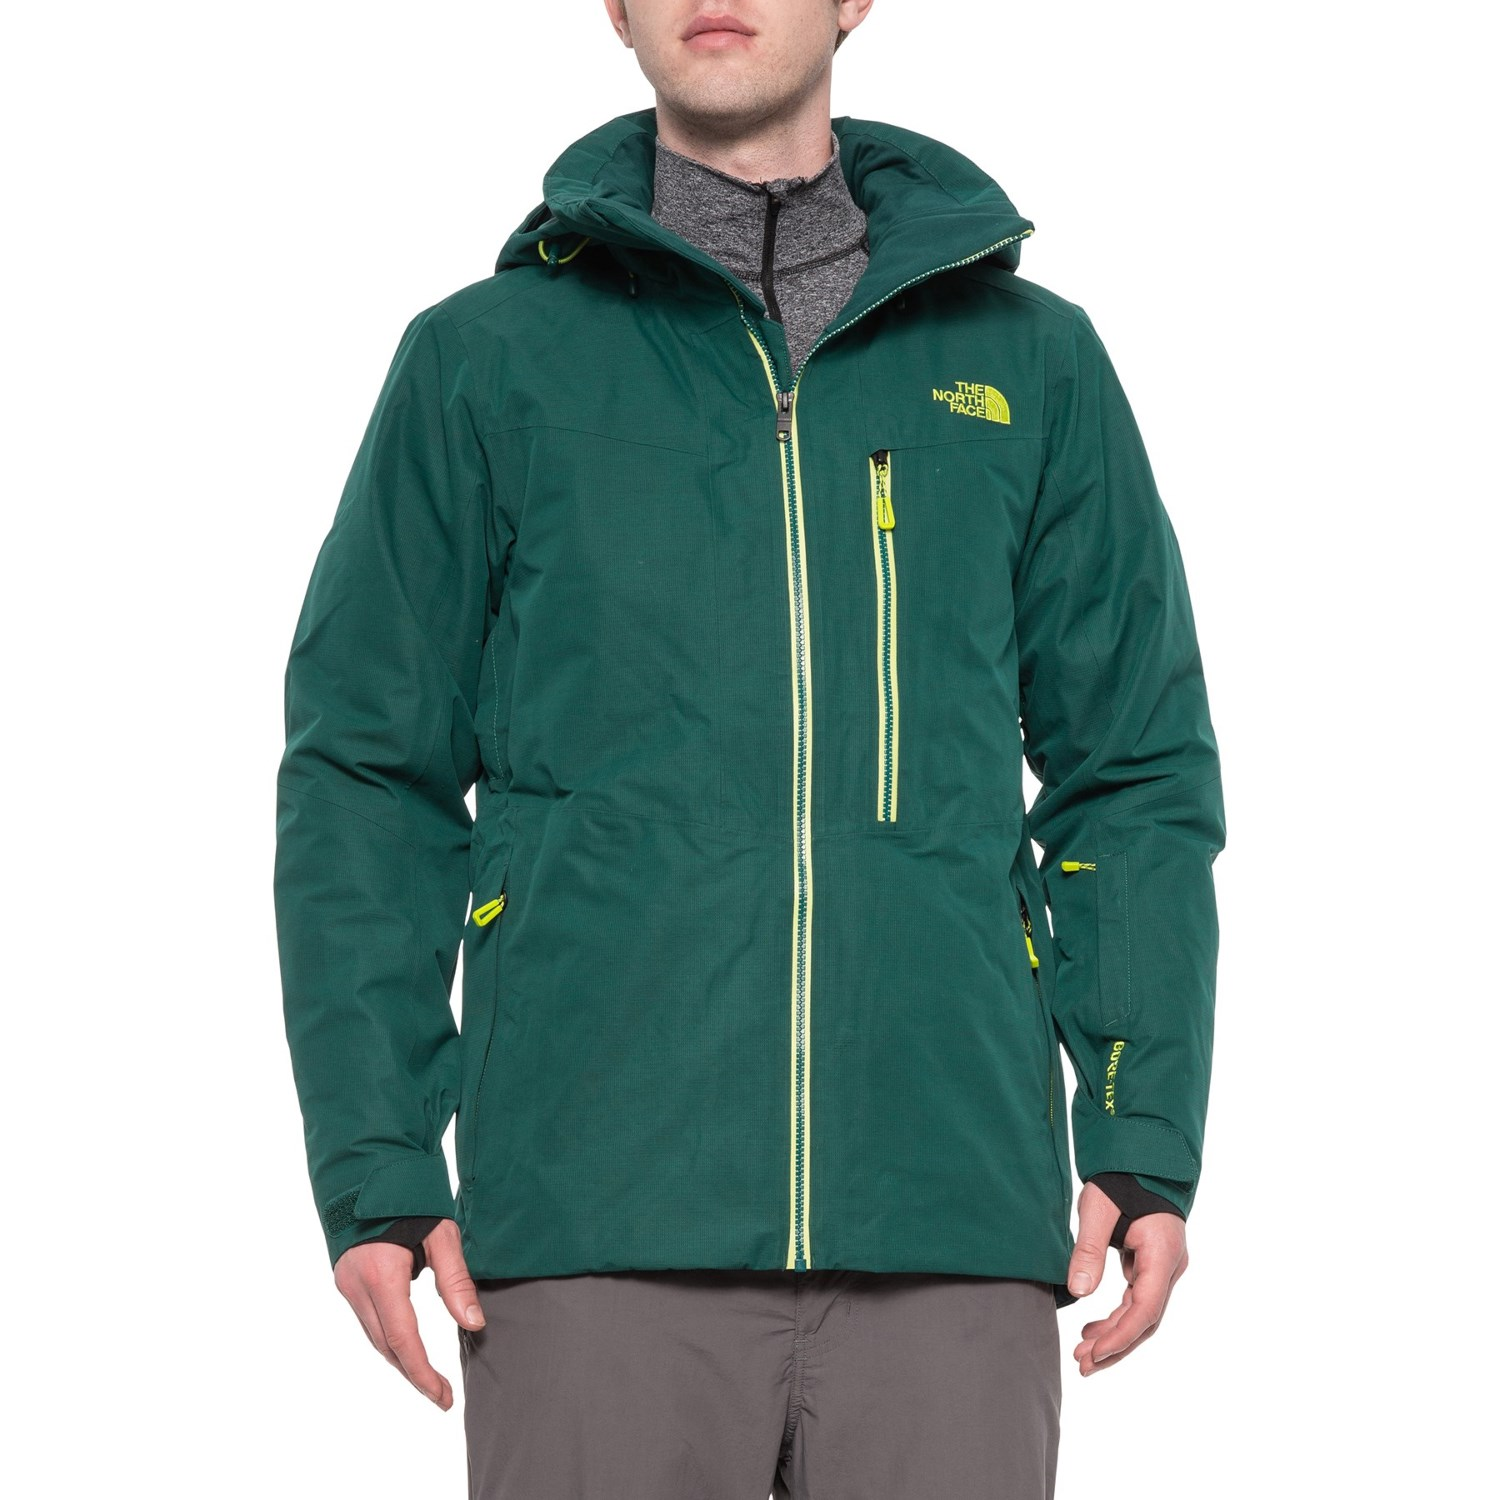 66e2d496a The North Face Maching Gore-Tex® Jacket - Waterproof, Insulated (For Men)